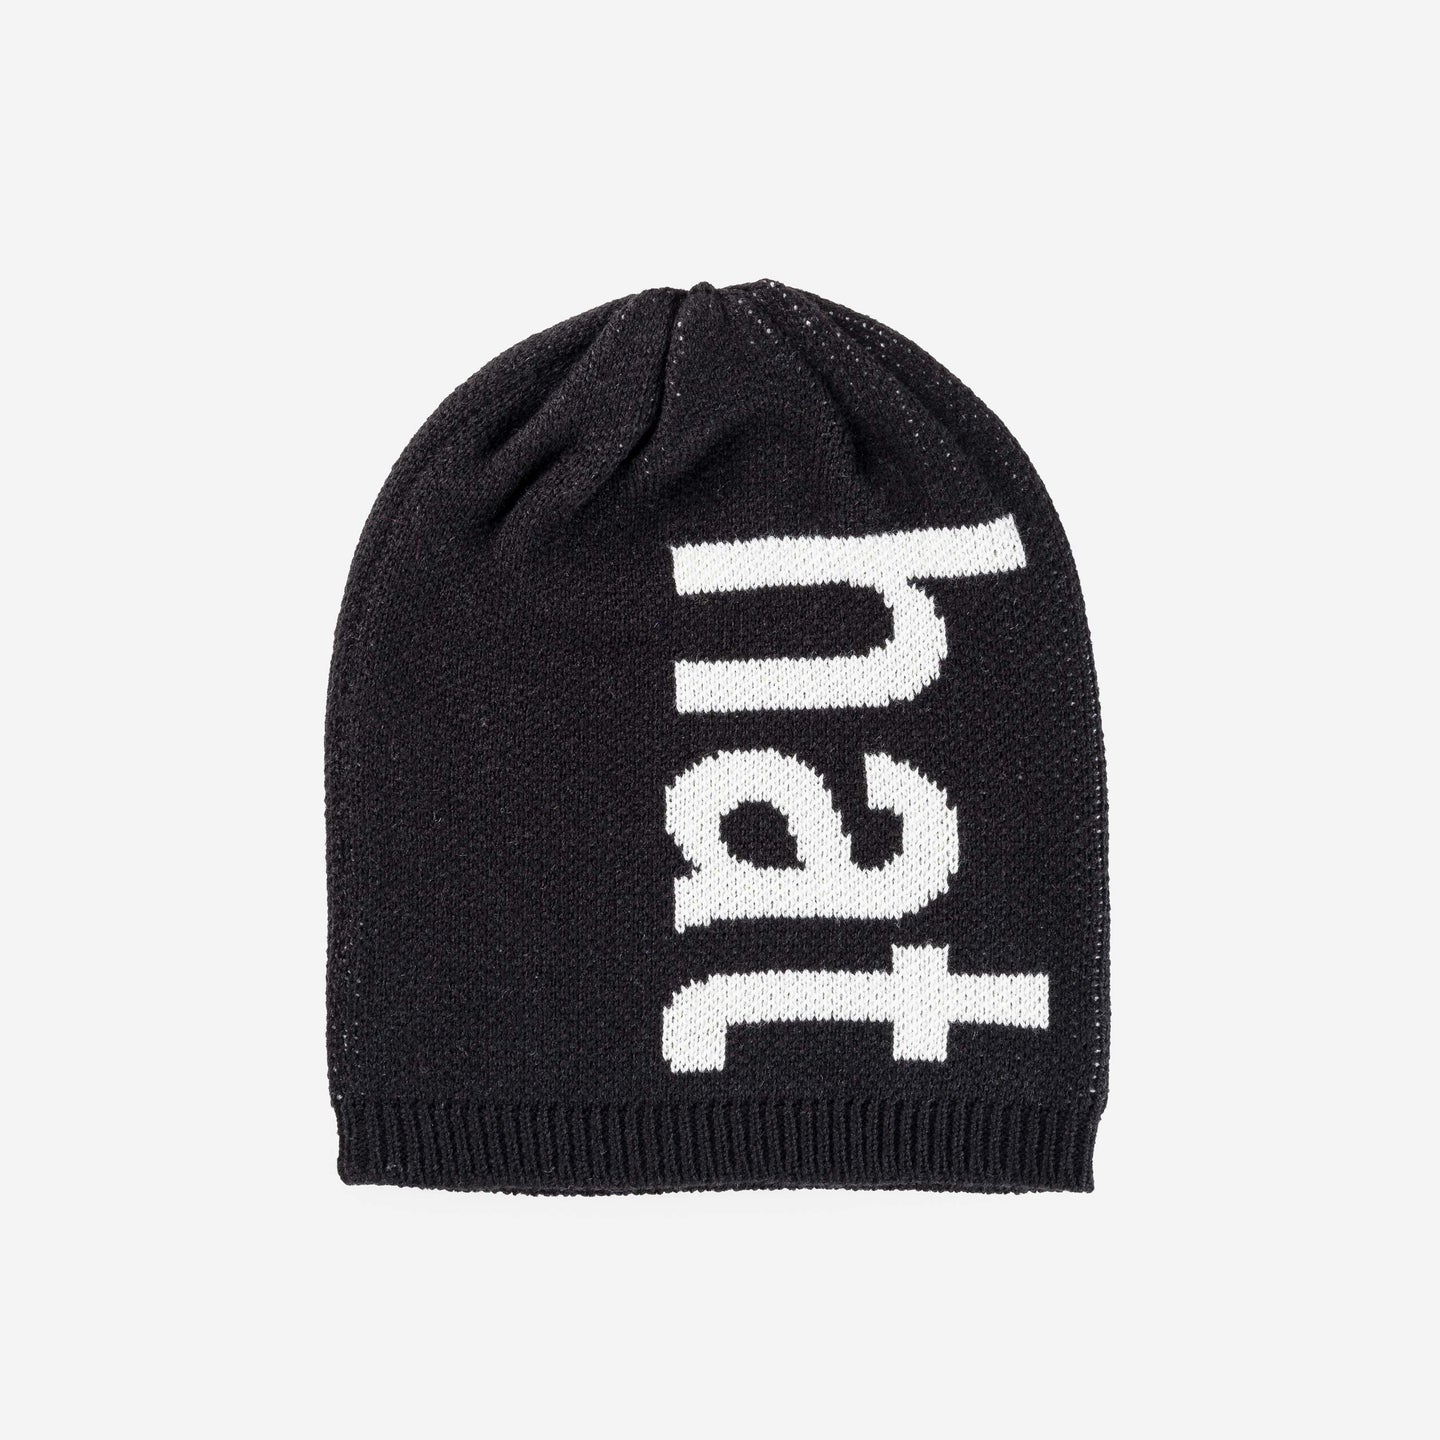 Hat Hat Letters Block Knit Typography Knit